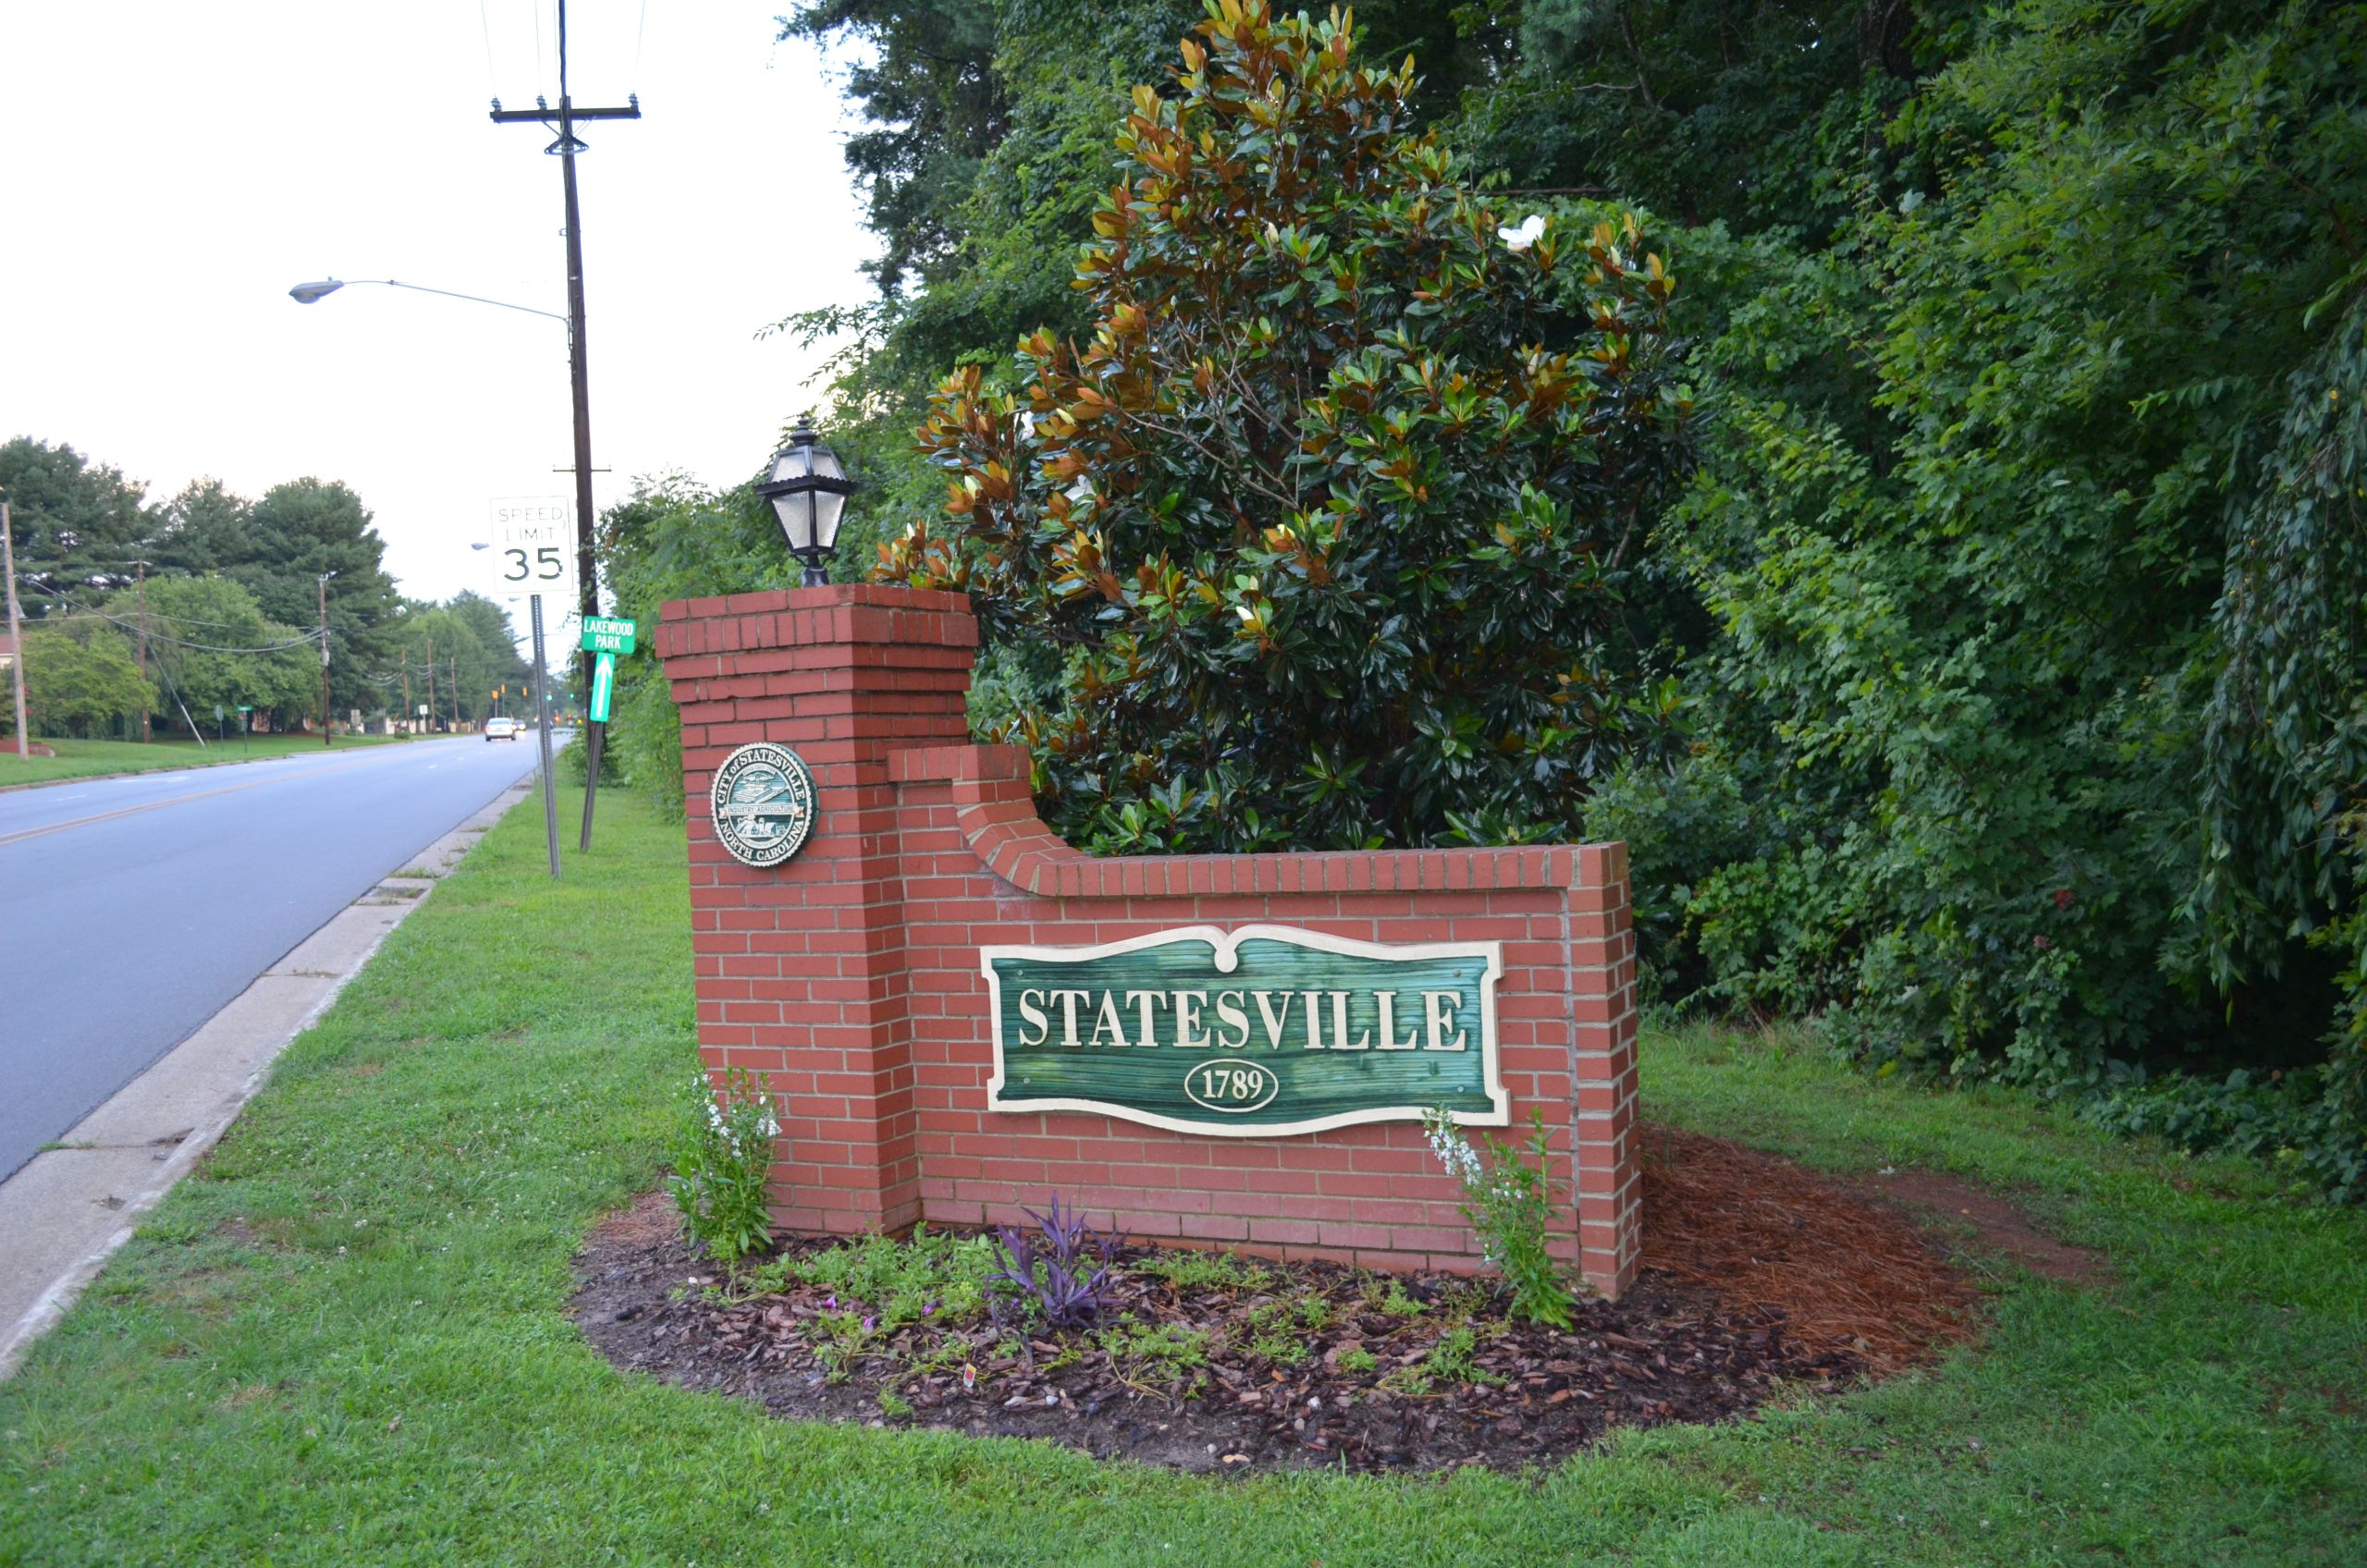 Welcome to Statesville!